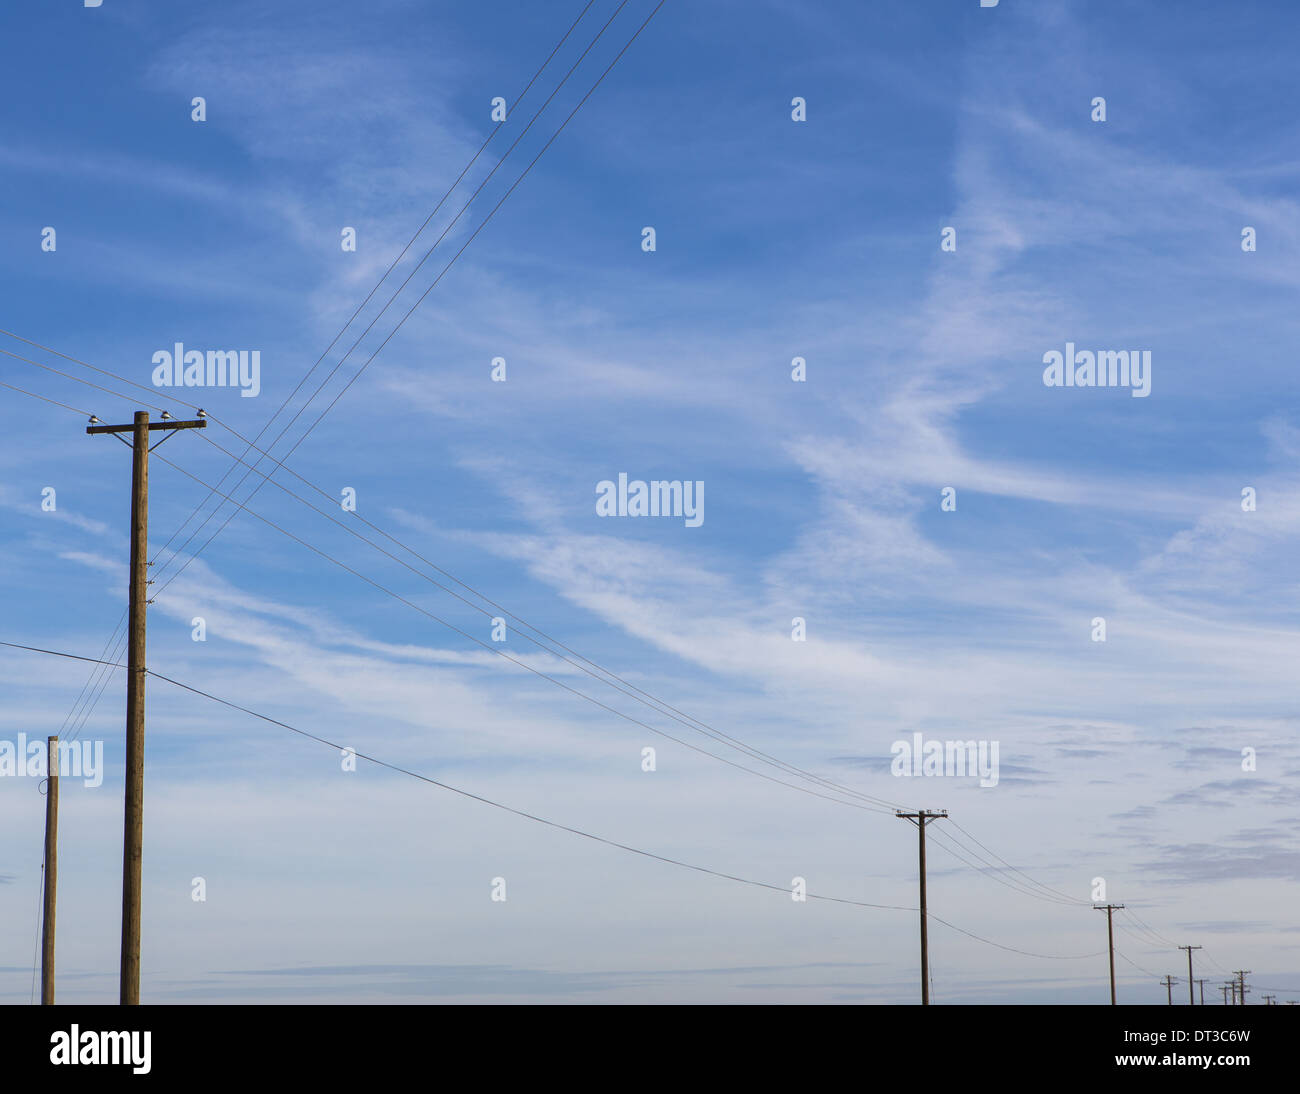 Telephone poles and power lines in a line across the landscape at Belridge, California. - Stock Image